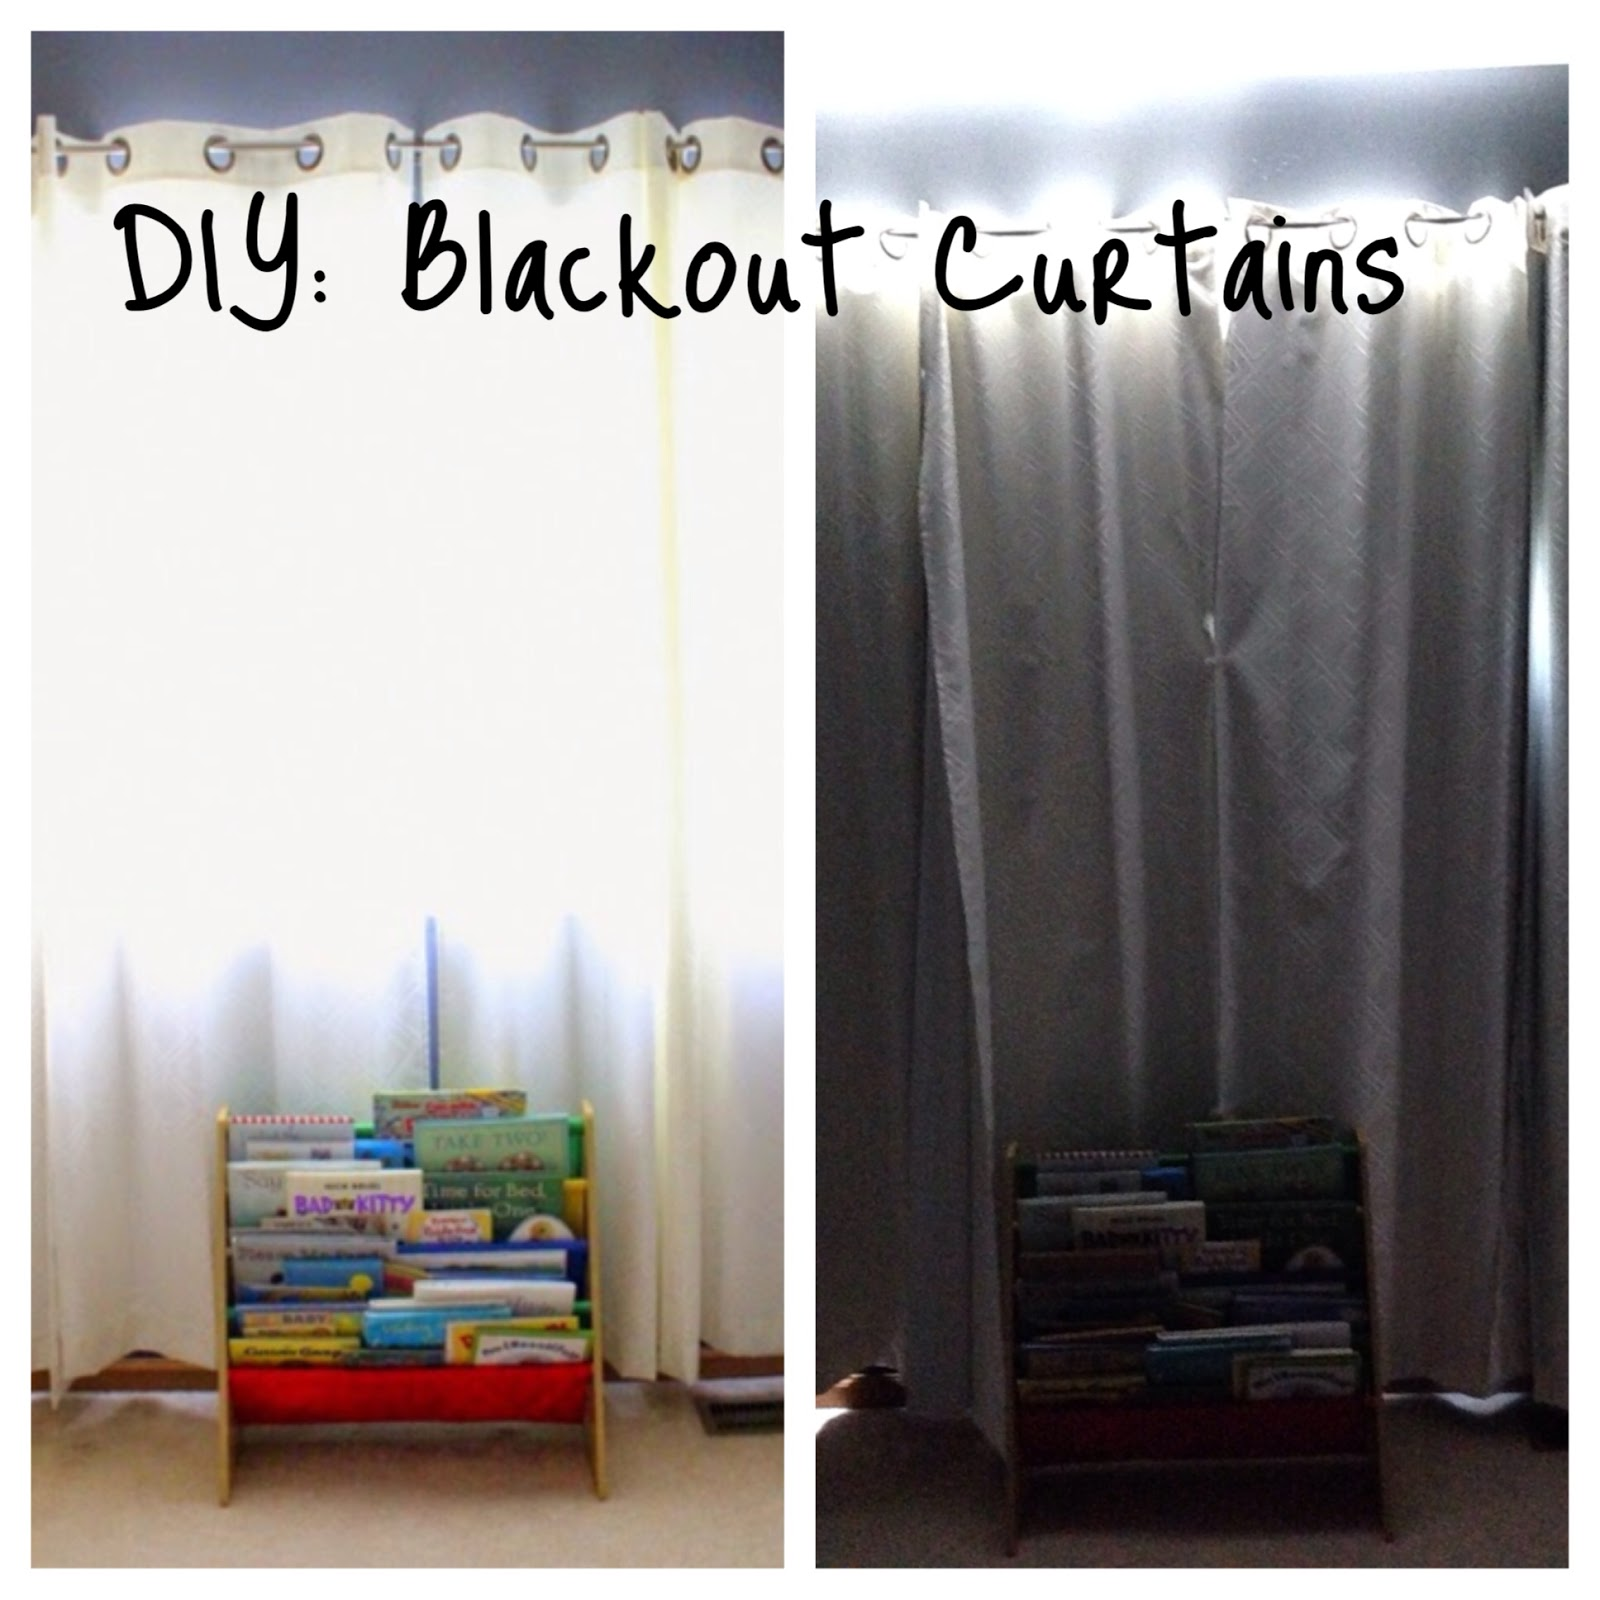 Married To Davis Diy Blackout Curtains